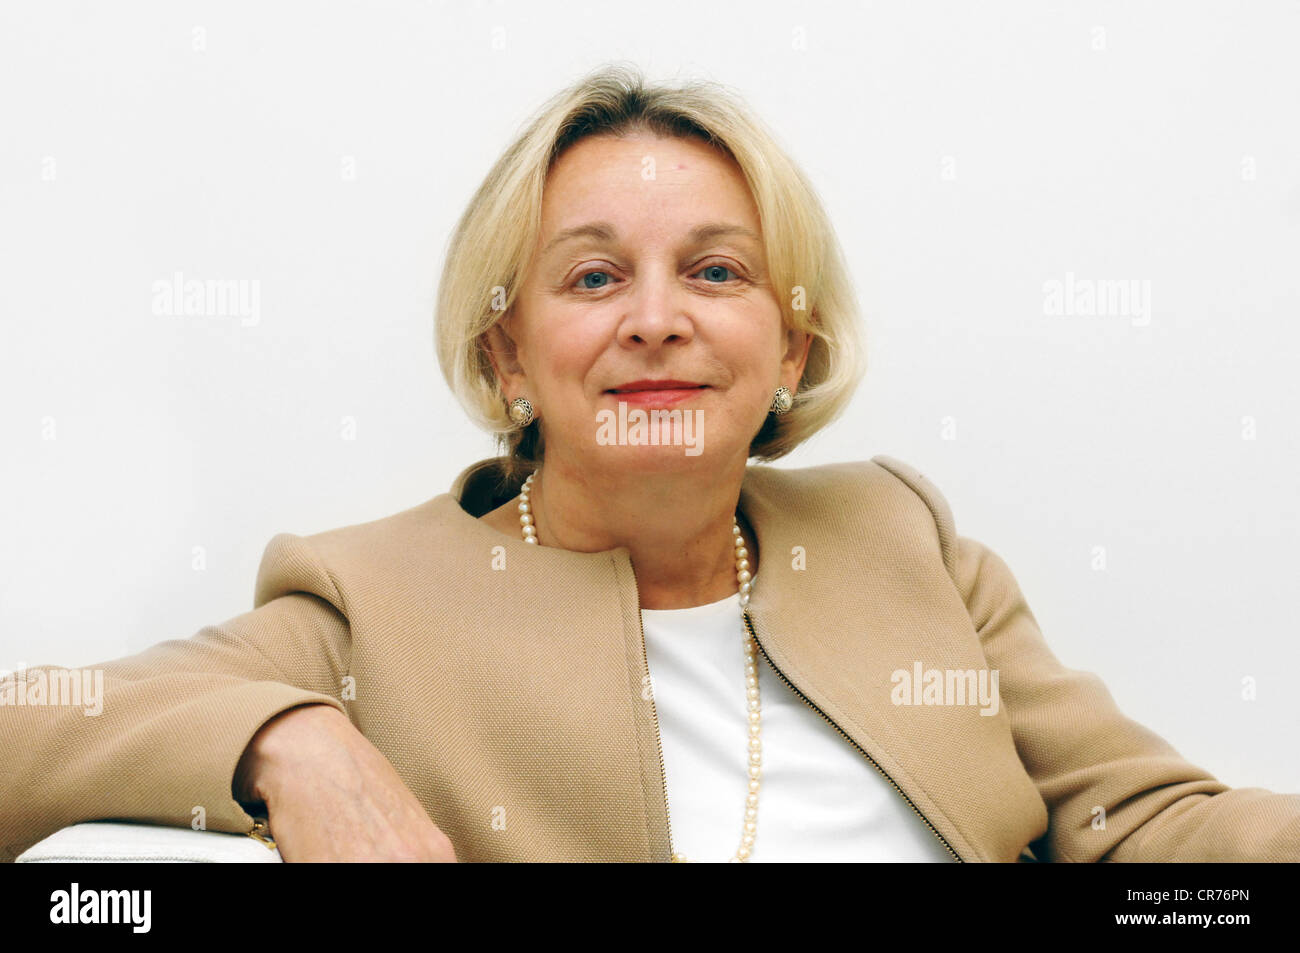 Royal Mail CEO Moya Greene Stock Photo: 48716829 - Alamy